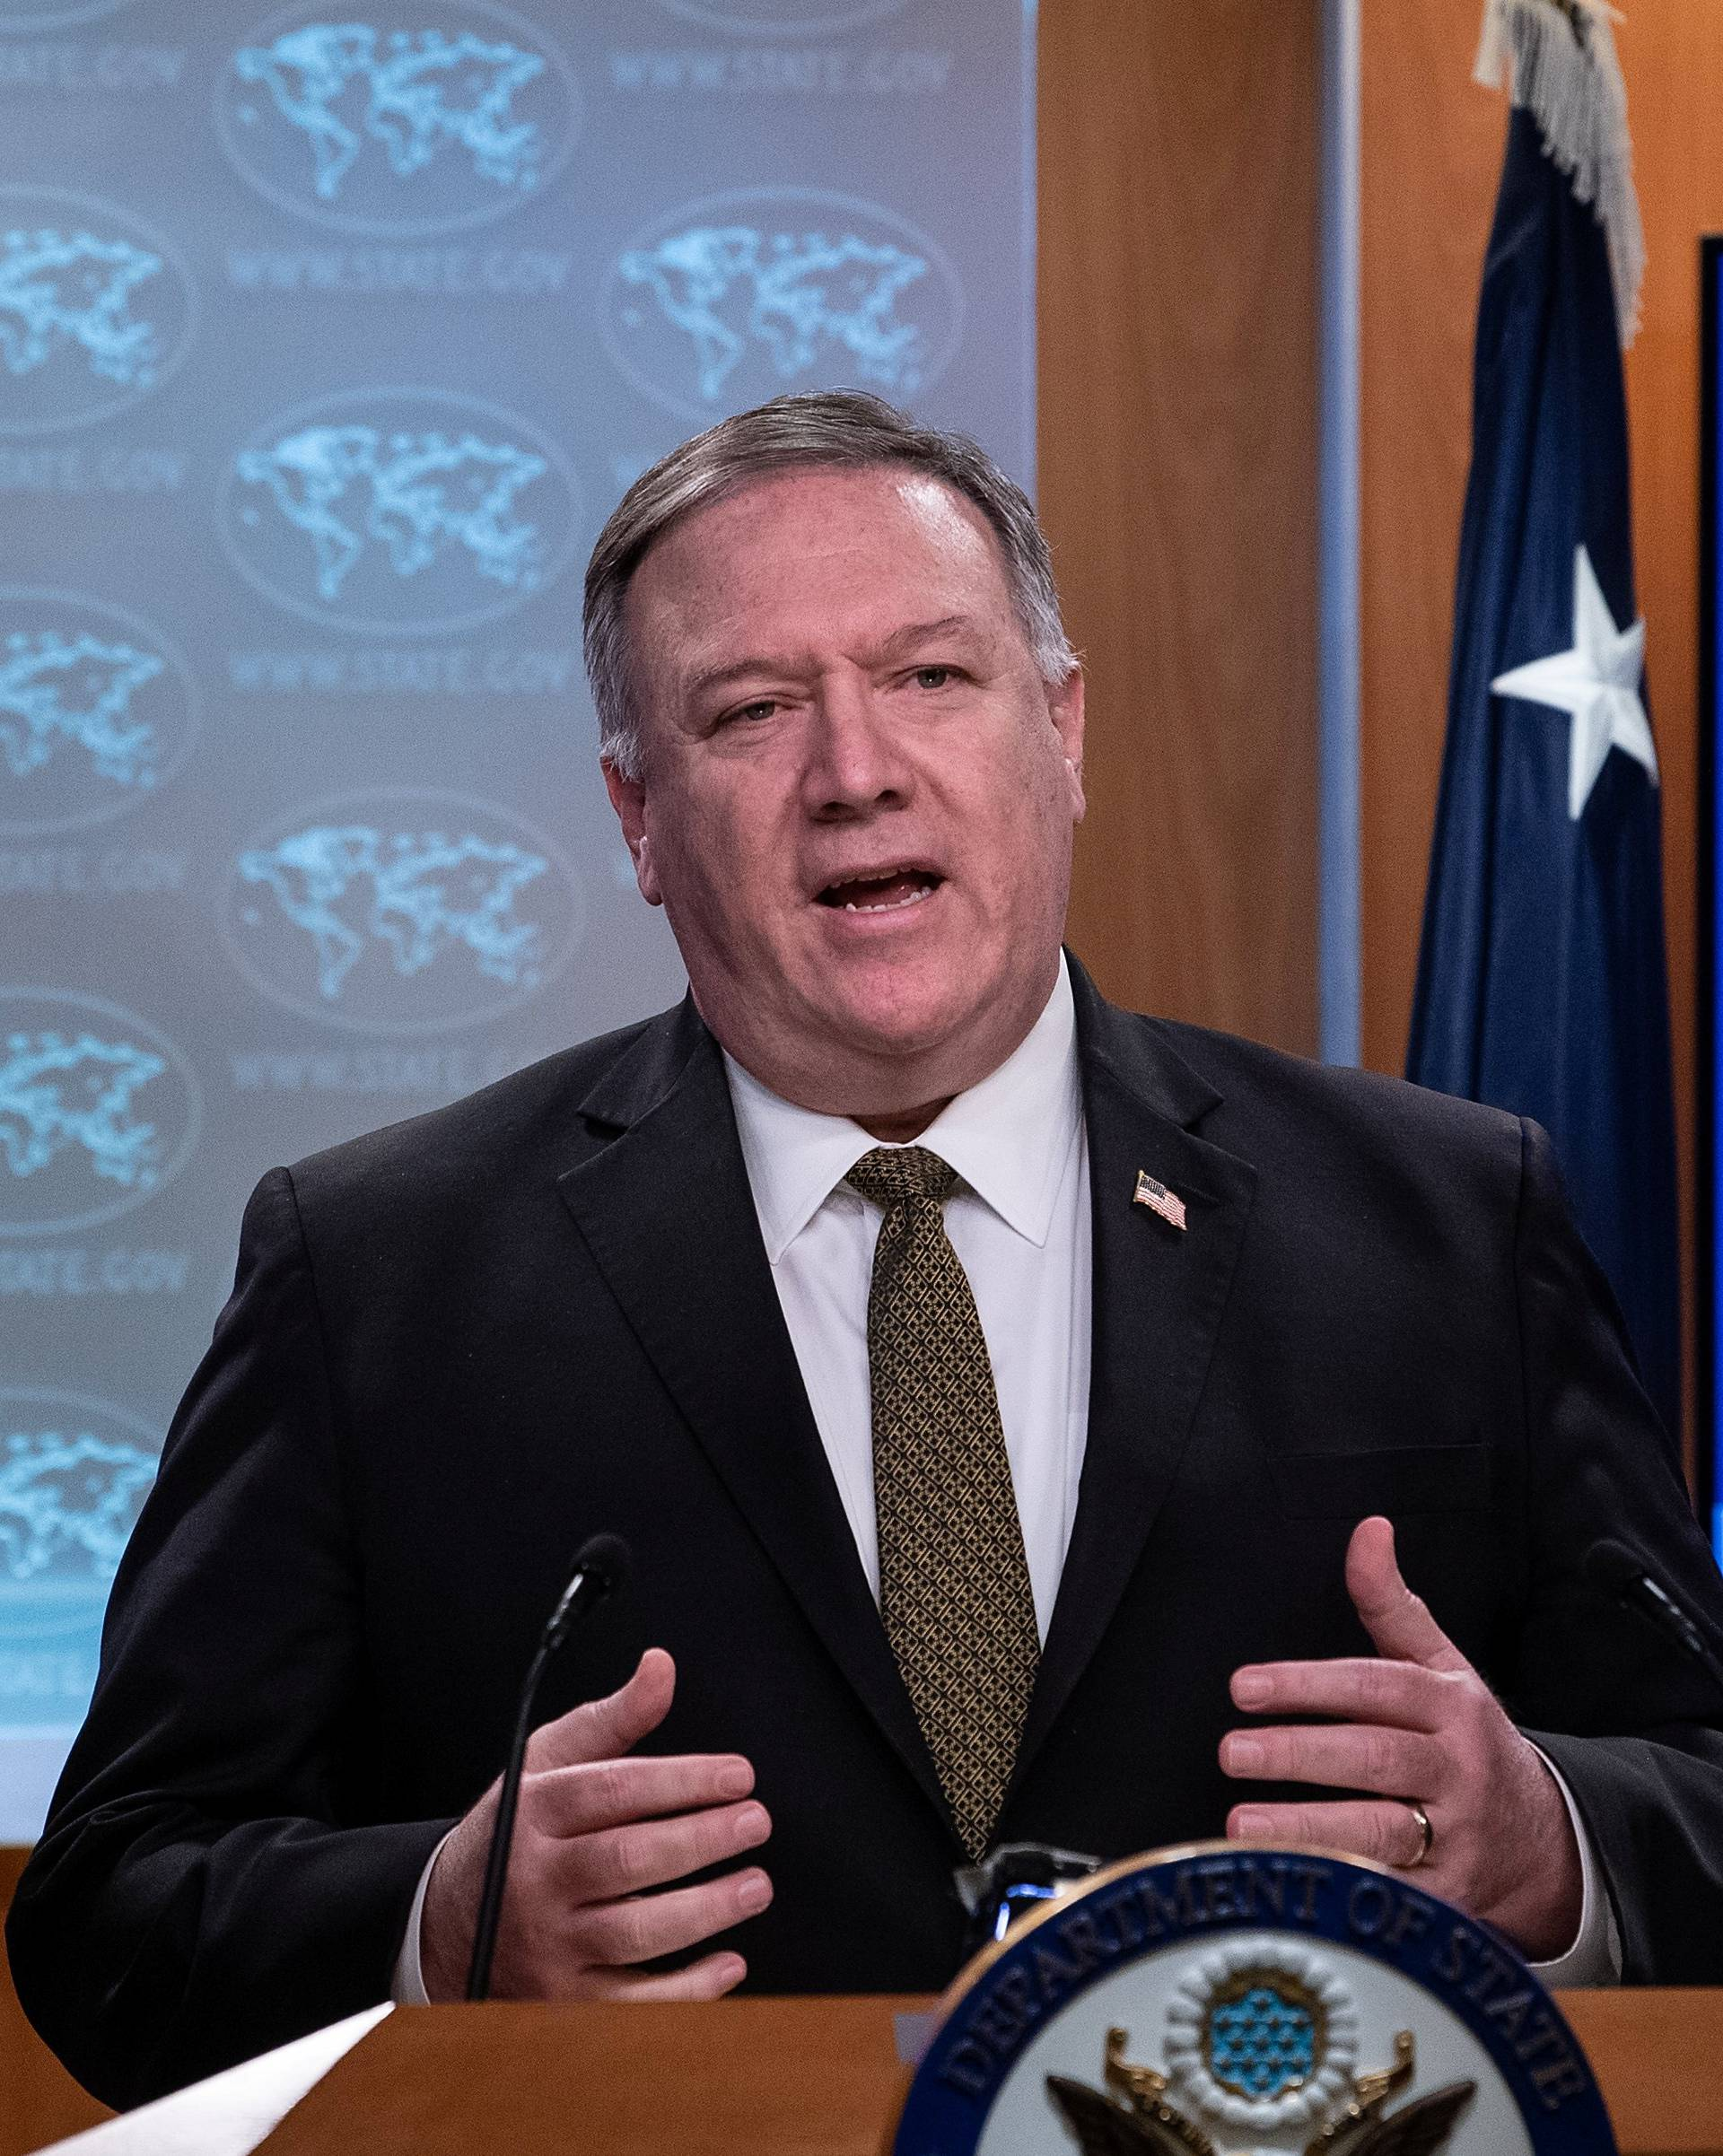 U.S. Secretary of State Mike Pompeo speaks at a press briefing at the State Department in Washington